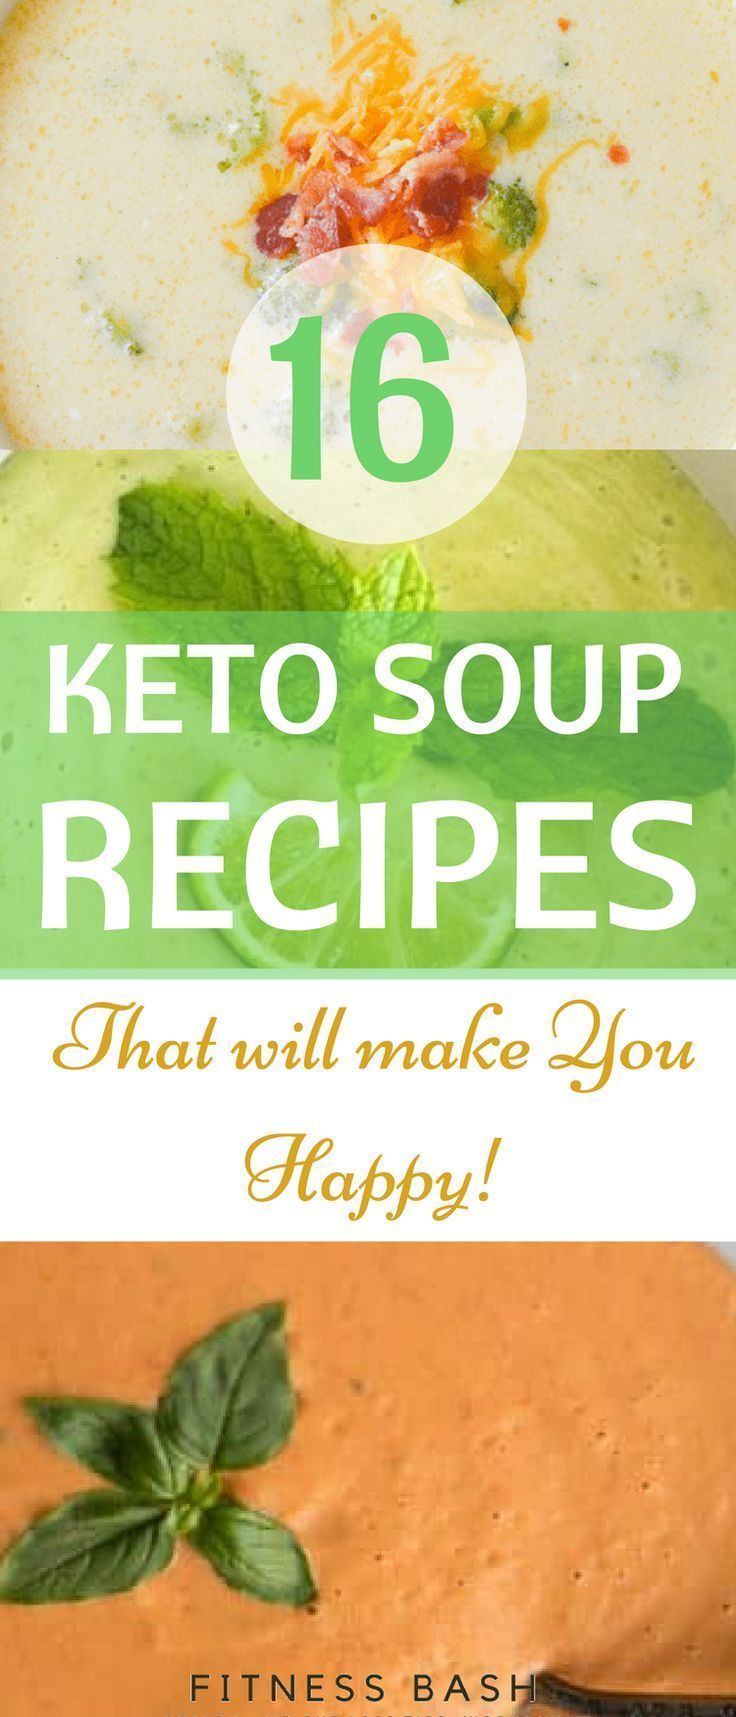 381 Easiest Way To Prepare Tasty Instant Pot Cabbage Sausage Soup: Keto Soup Recipes: 16 Easy & Delicious Keto Soup Recipes